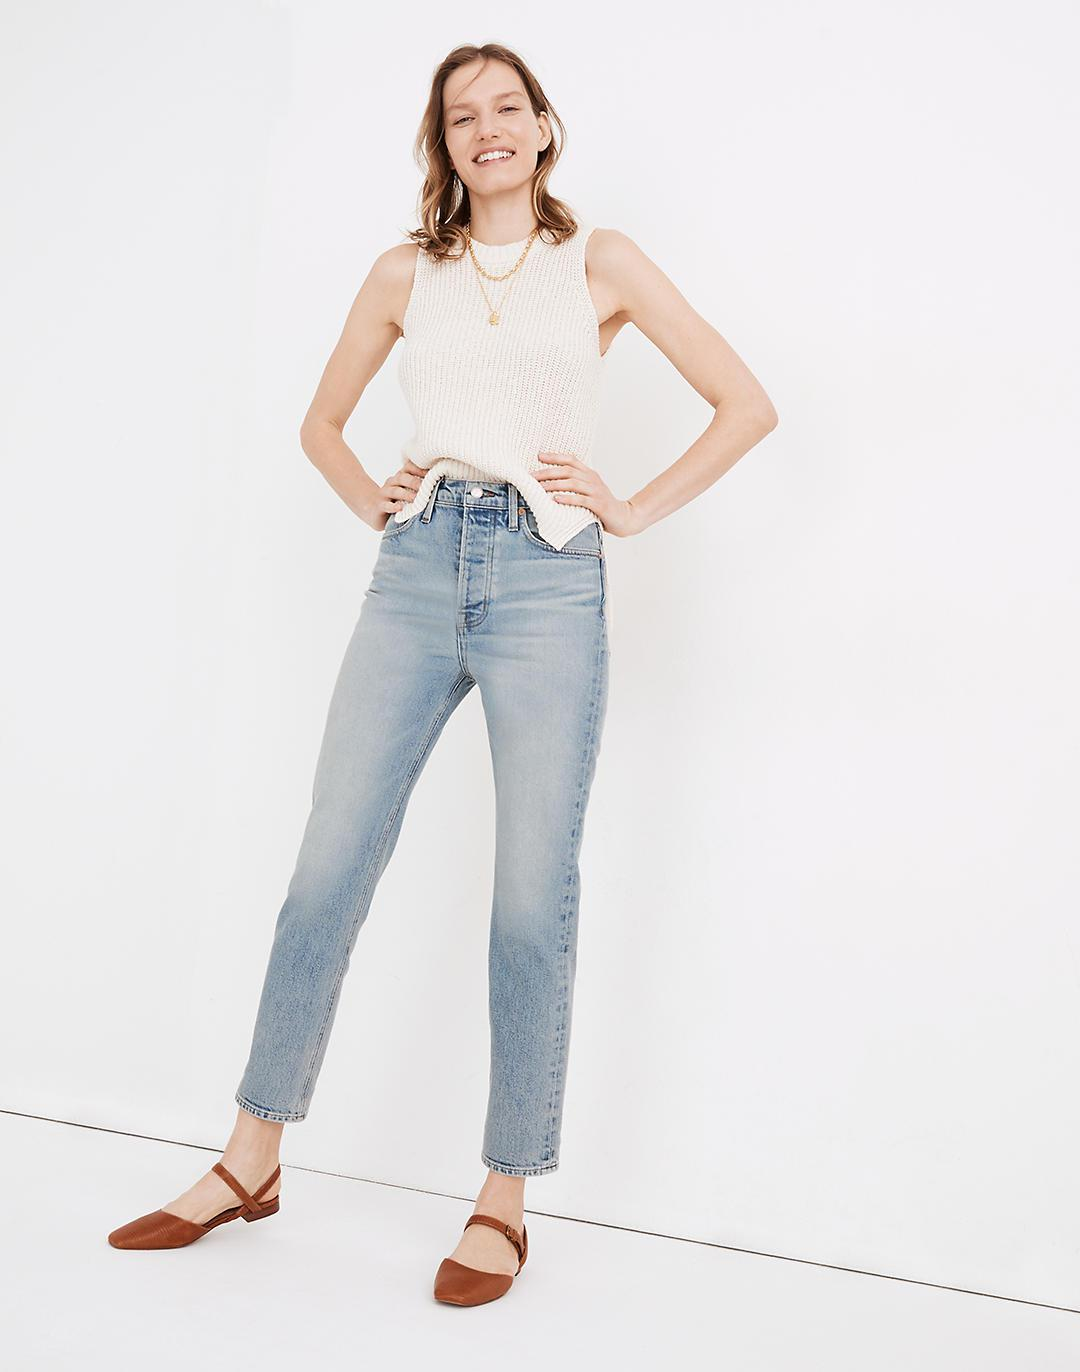 Rivet & Thread Perfect Vintage Jeans in Ryerson Wash